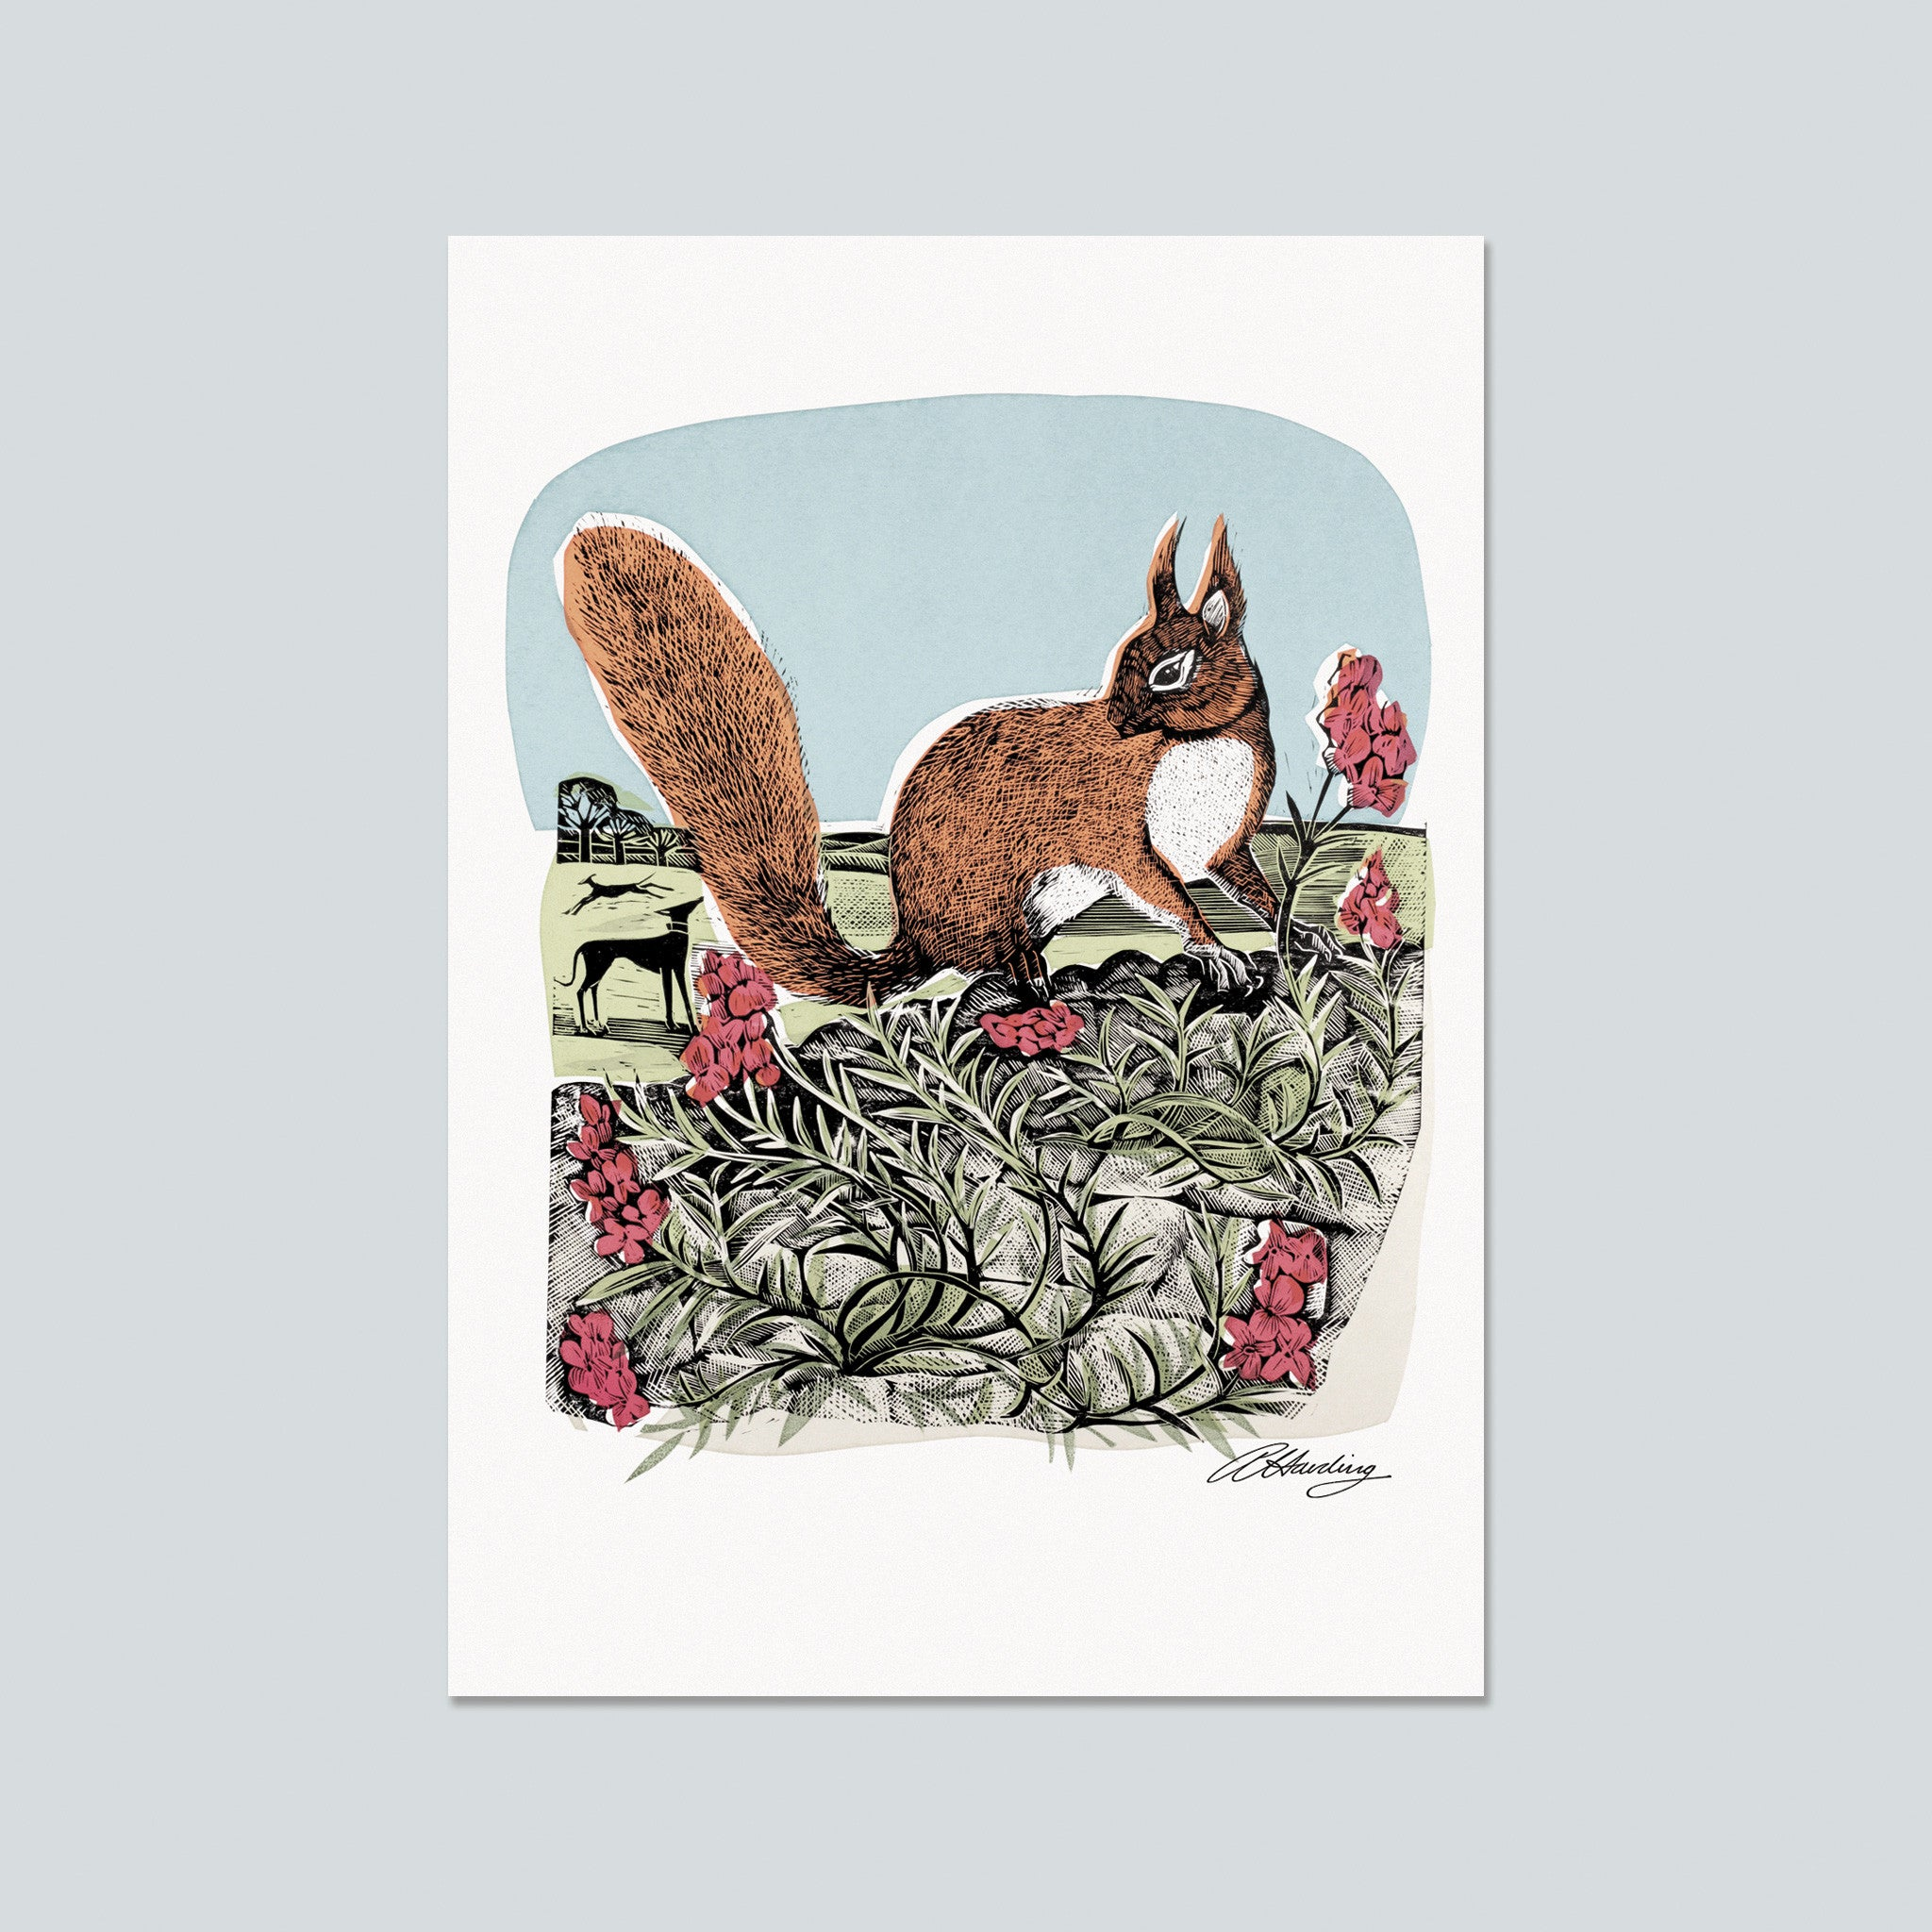 Red Squirrel and Wall Flower Postcard by Angela Harding